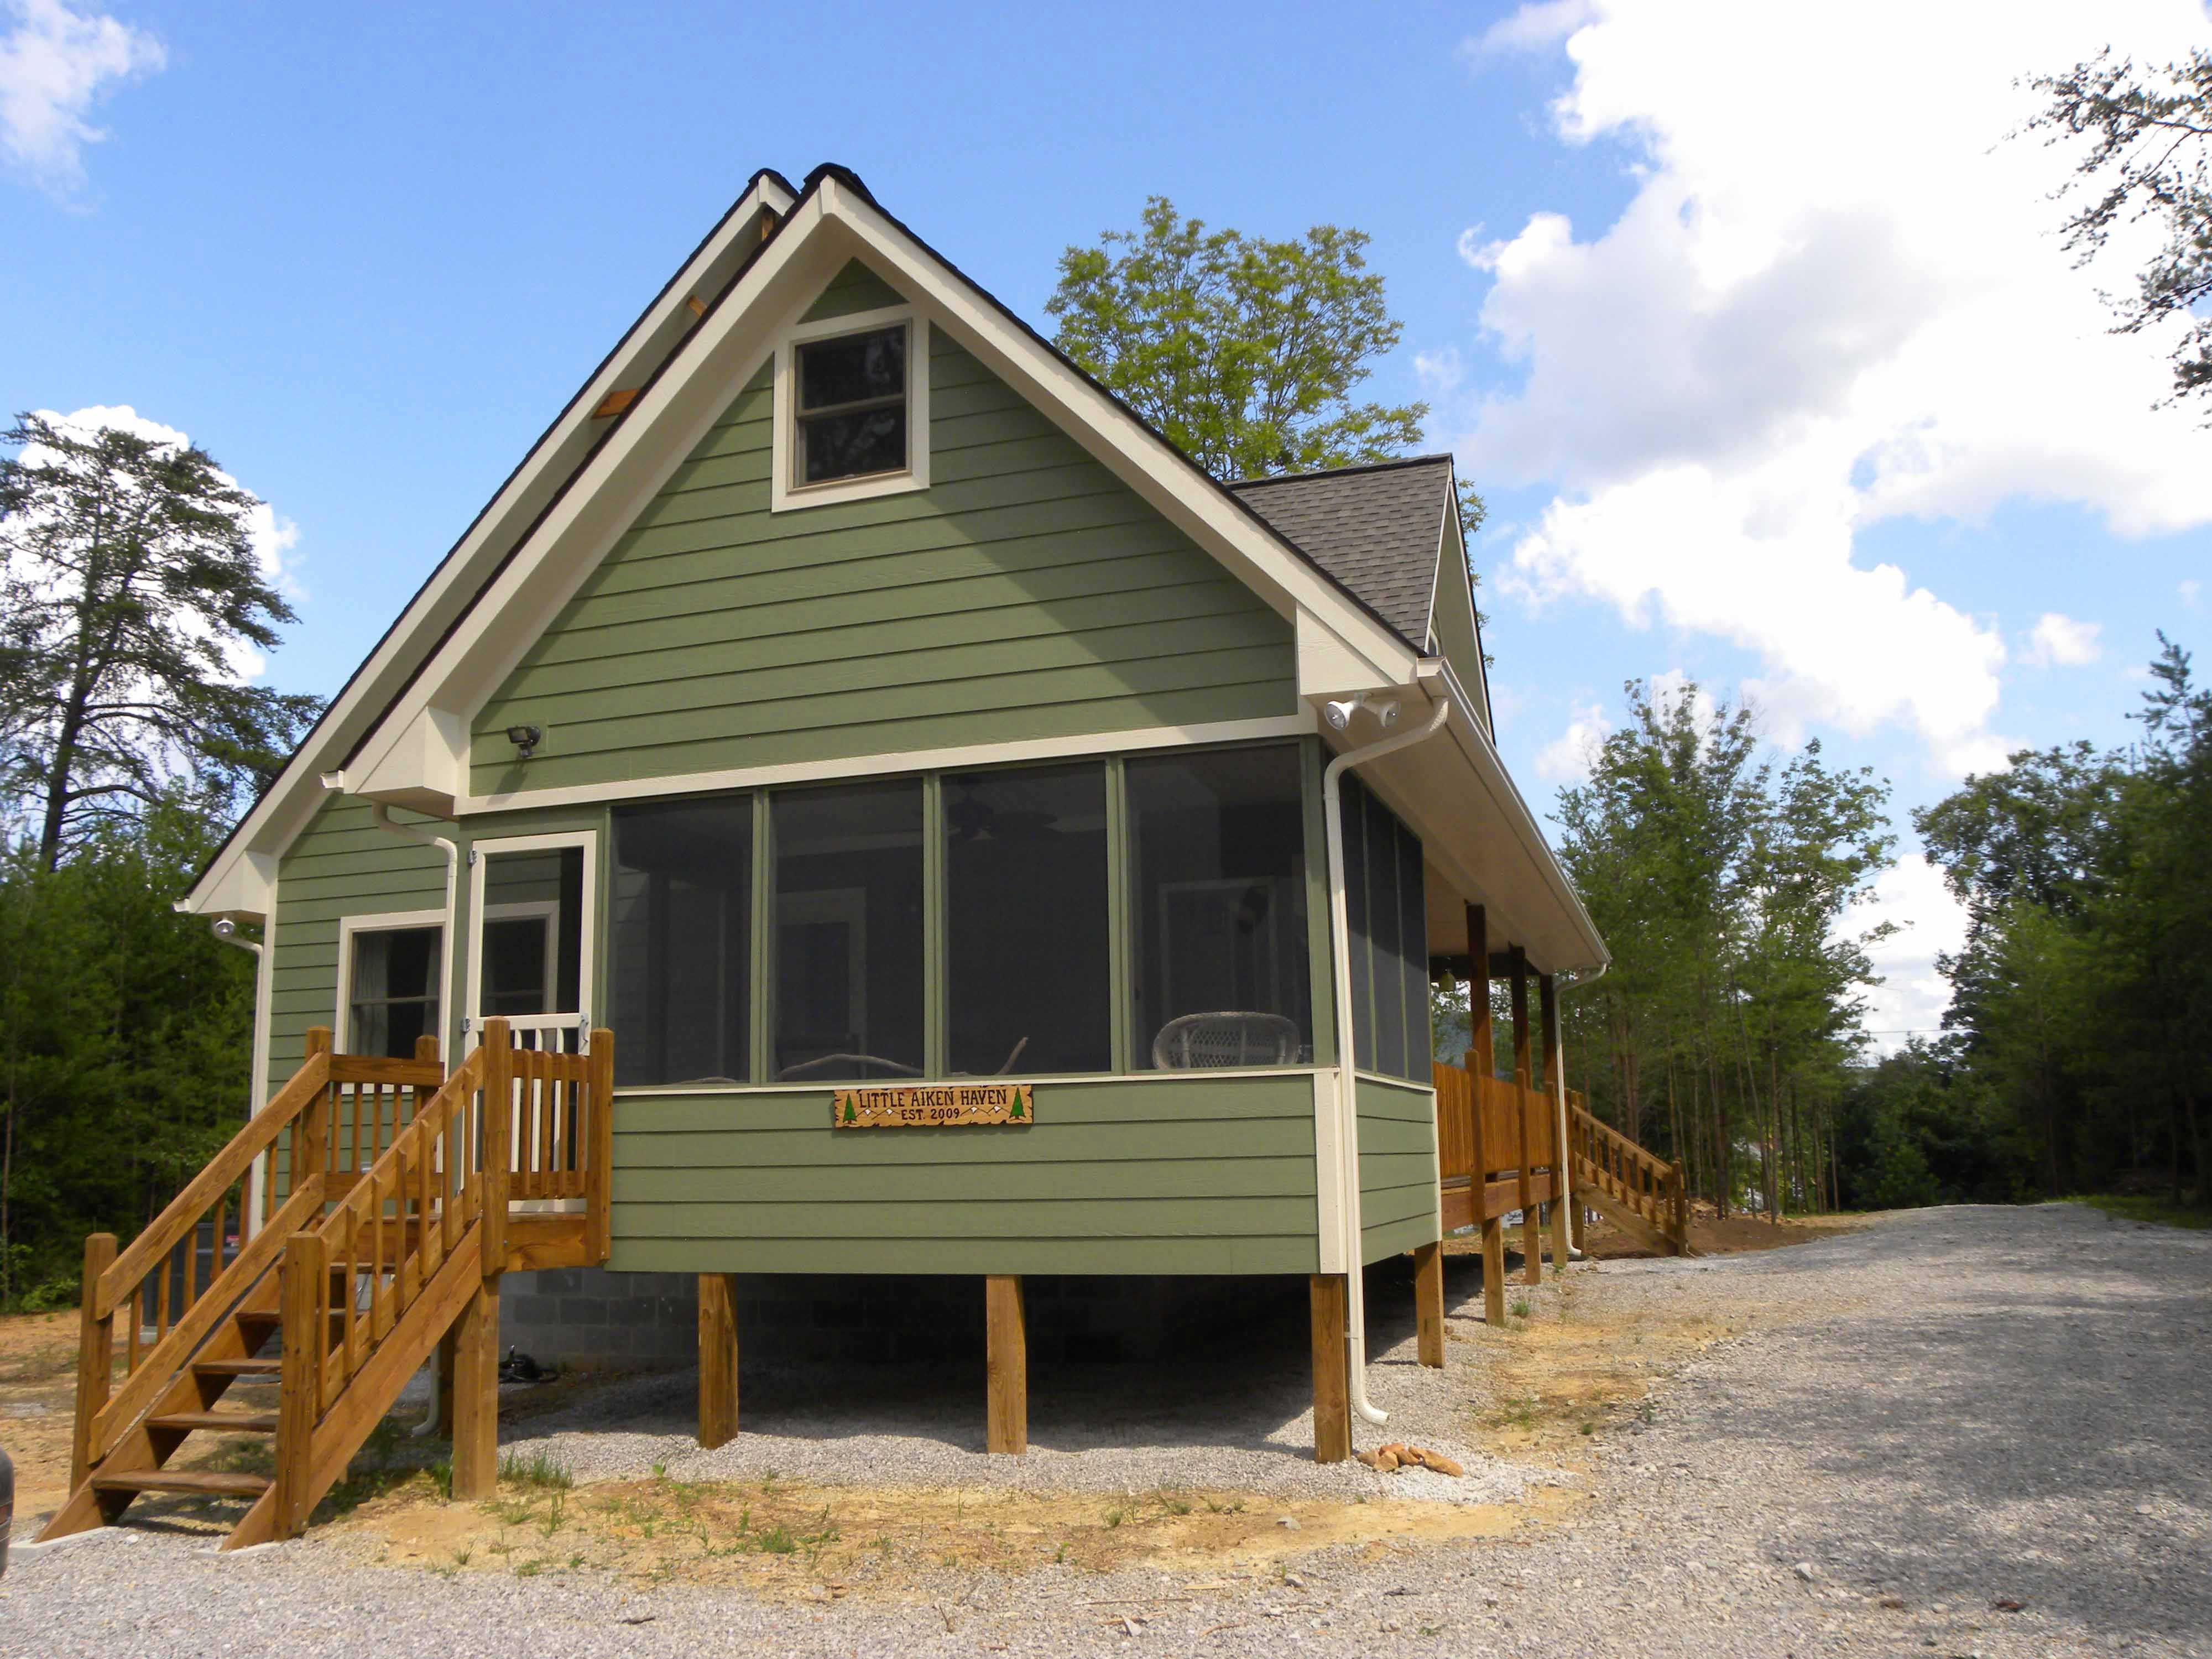 Tiny Home Designs: Cabins, Vacation Homes